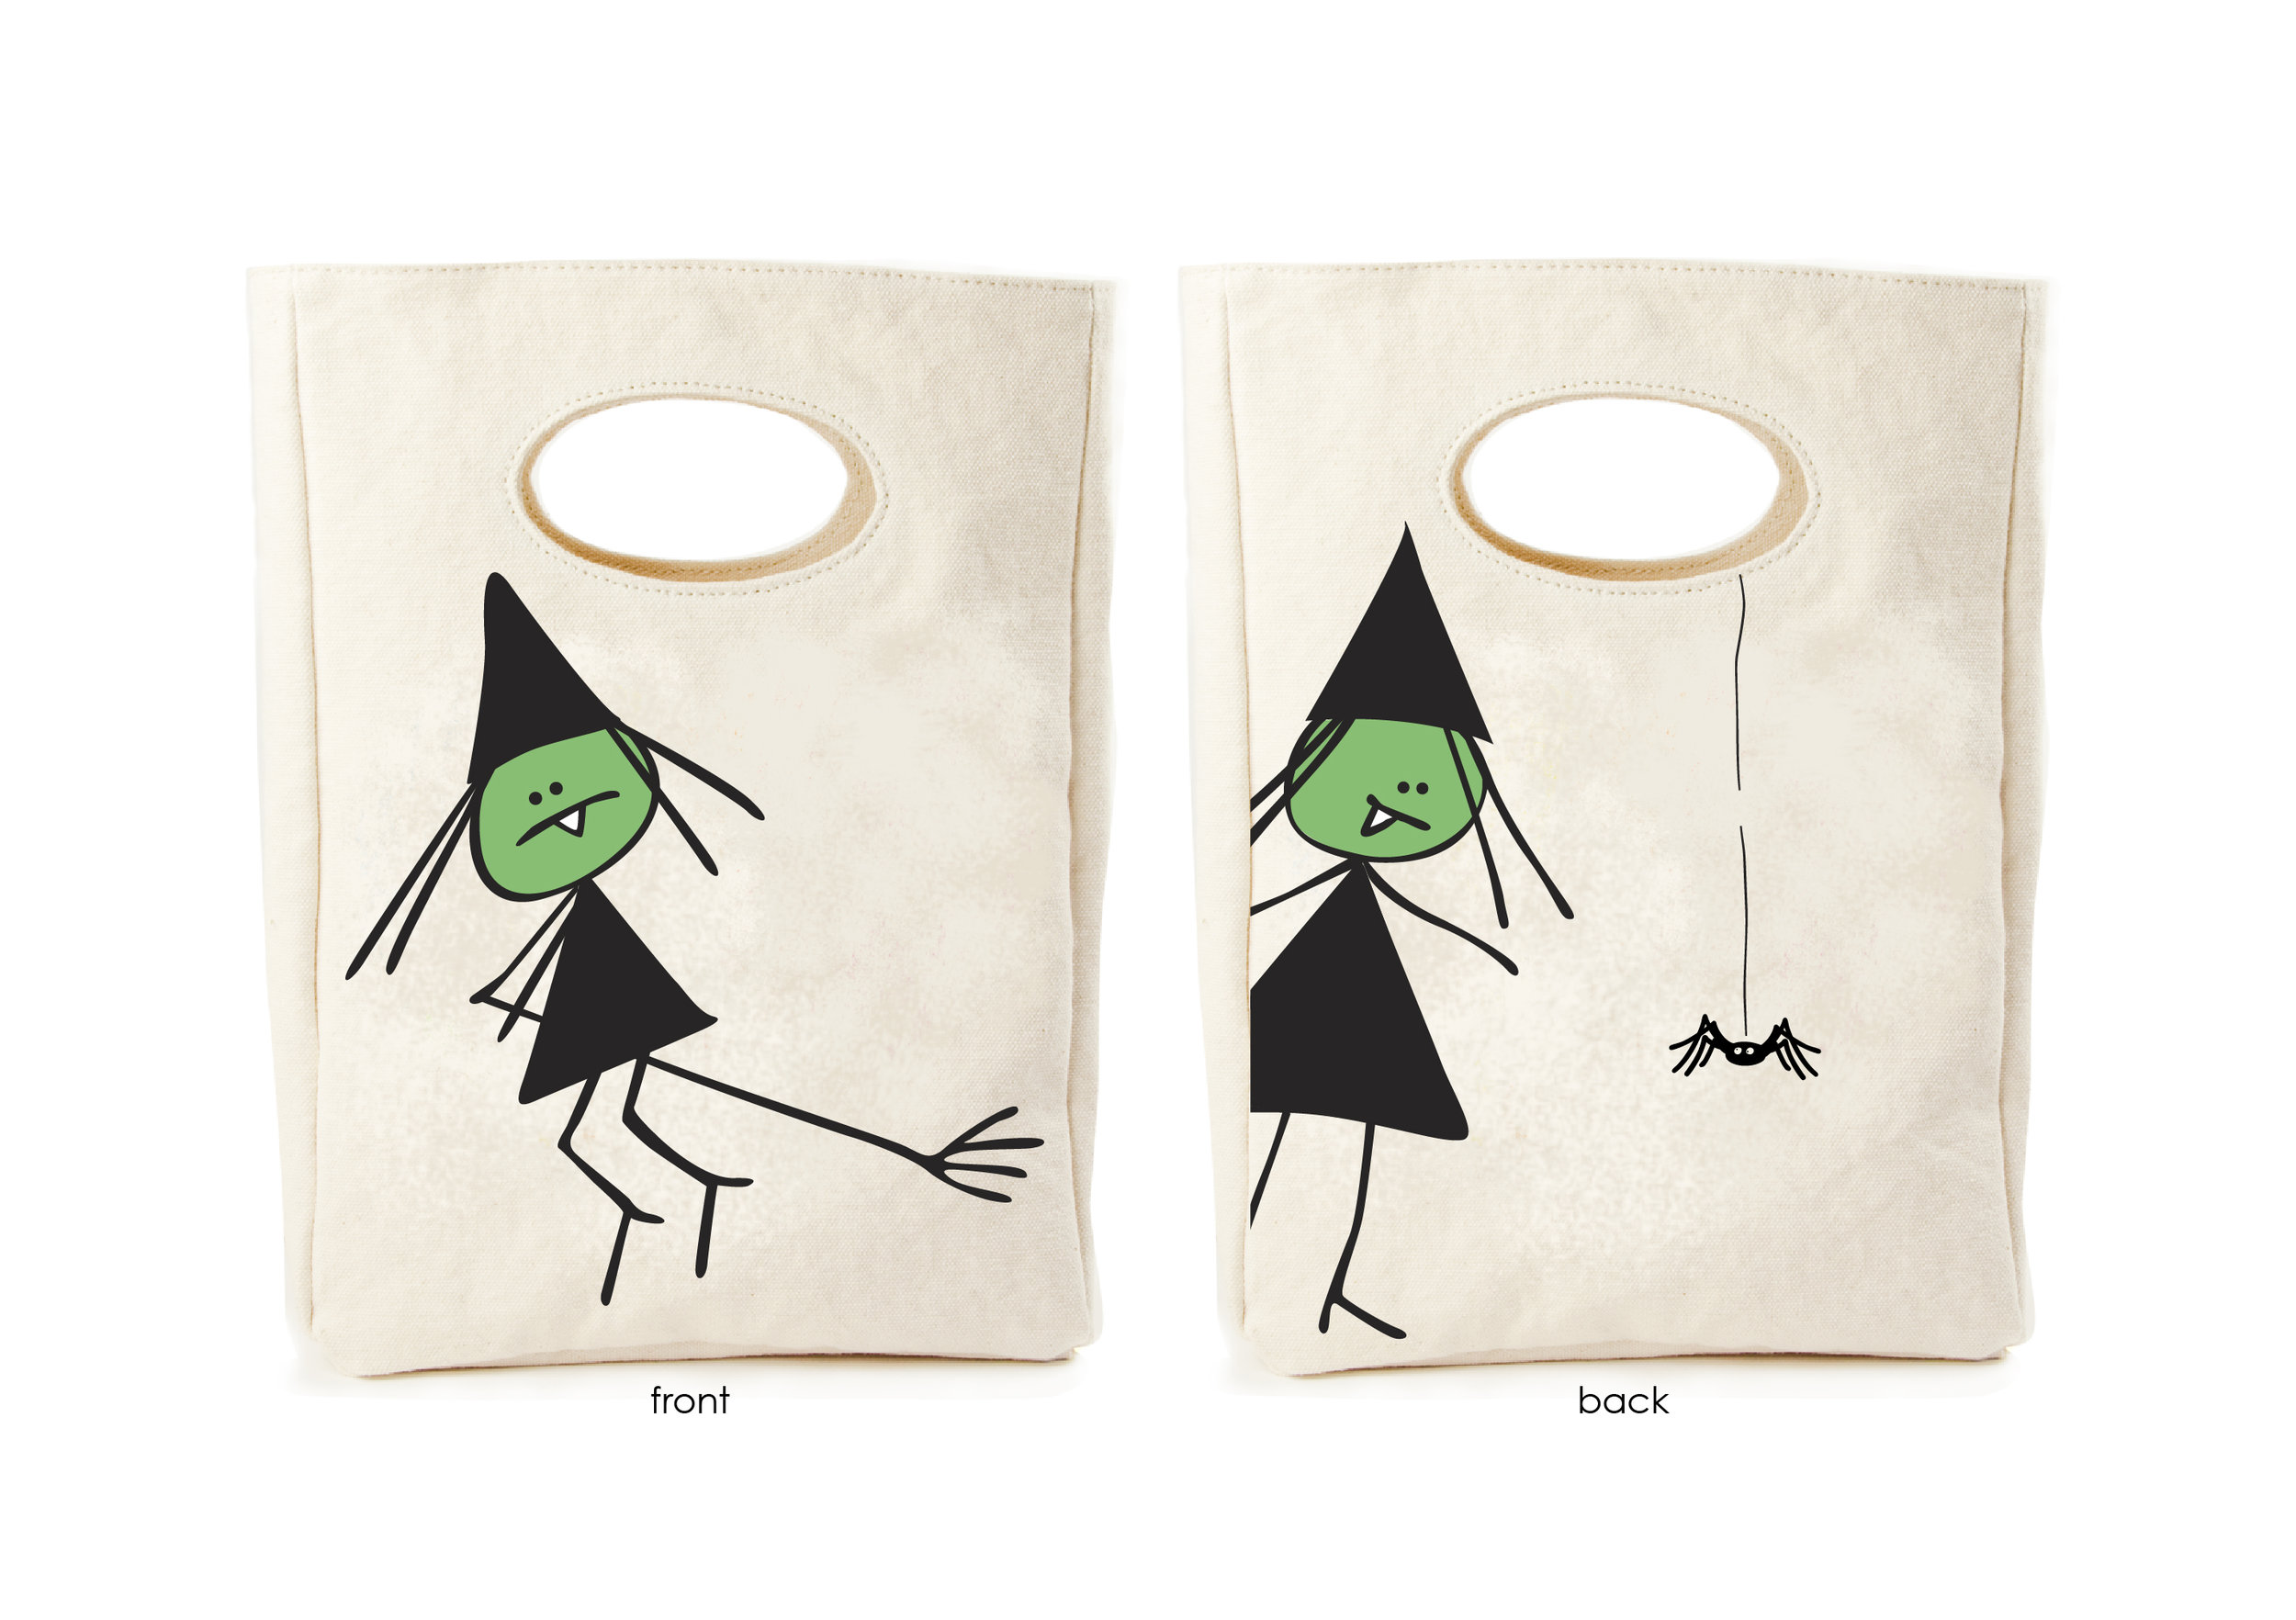 The Witchy Witch lunch bag doubles as a trick or treat bag. That's a win win.